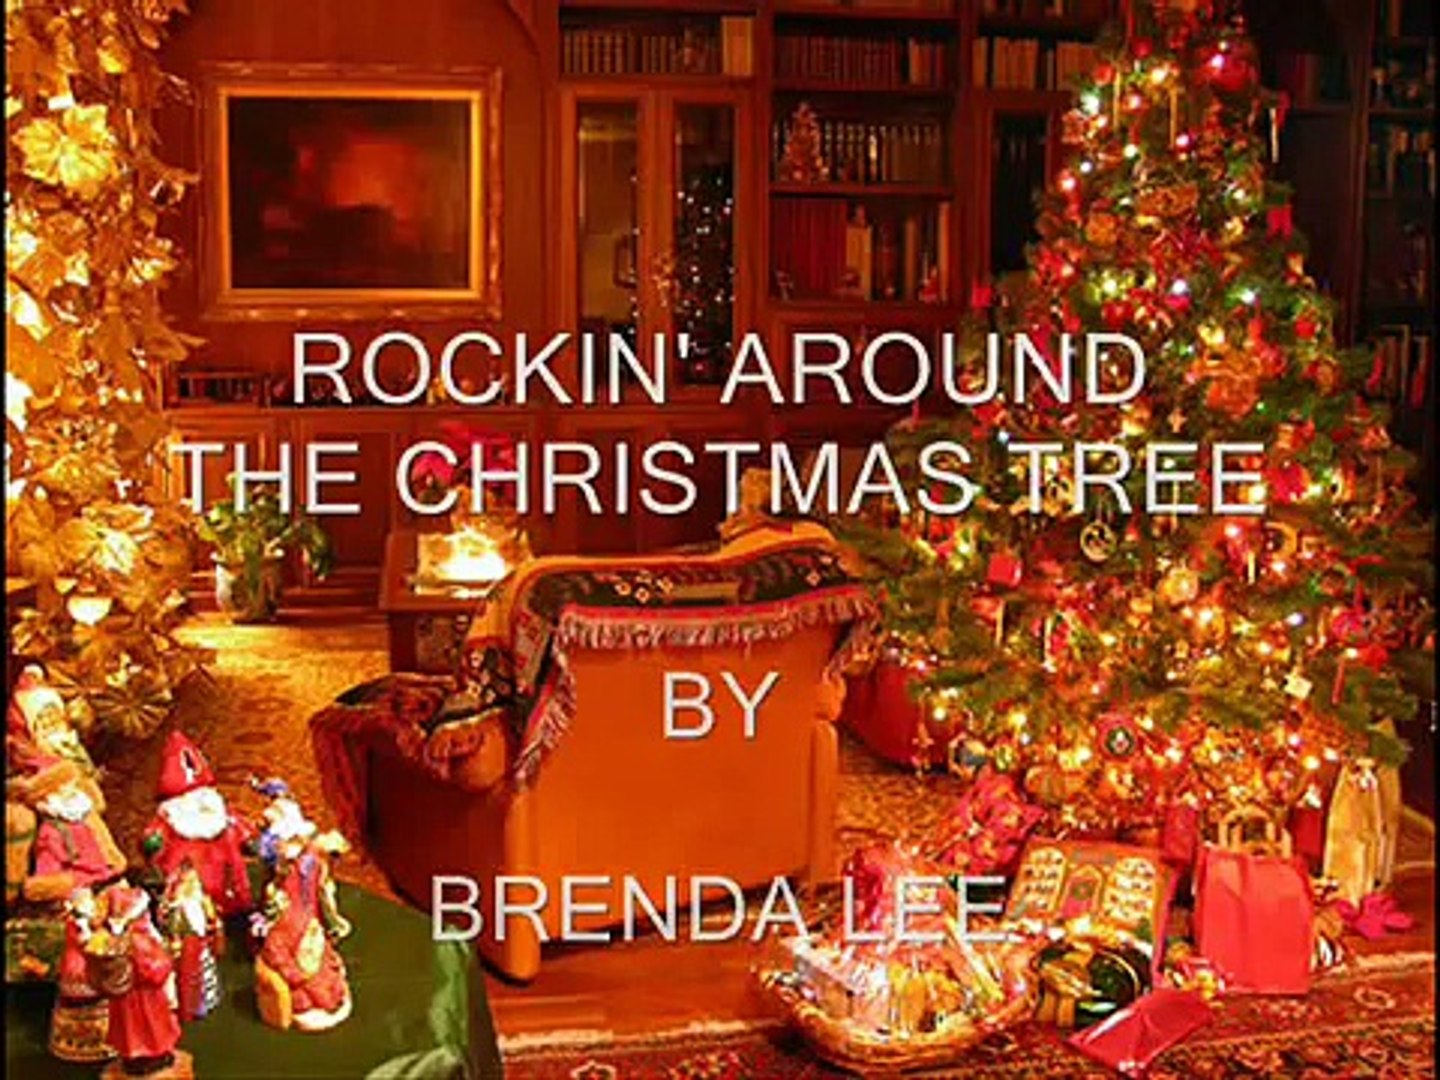 Brenda Lee Rockin Around The Christmas Tree Lyrics.Rockin Around The Christmas Tree By Brenda Lee